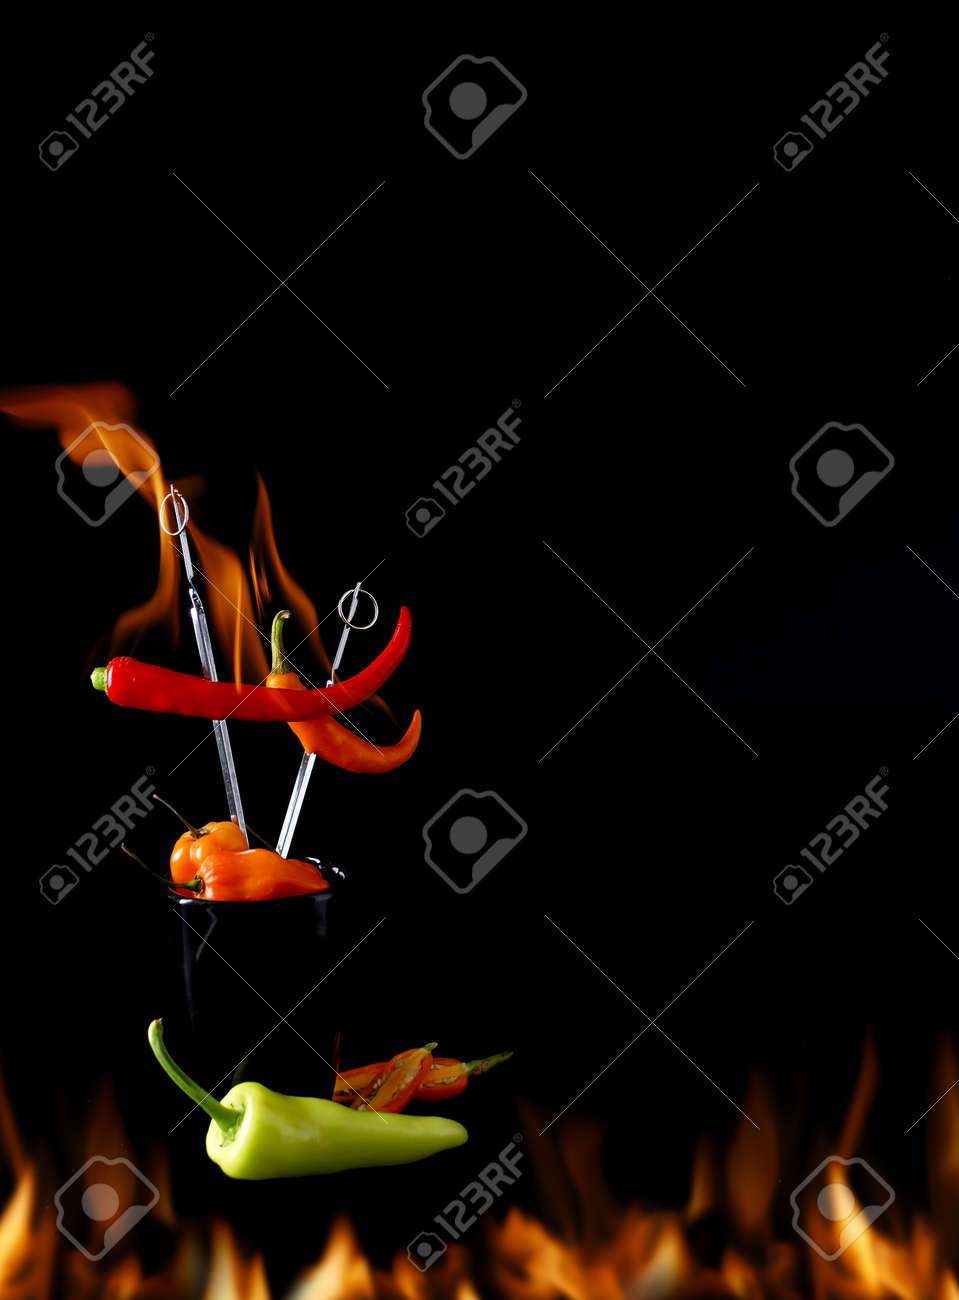 Hot chili pepper fire burns Stock Photo - 17251554